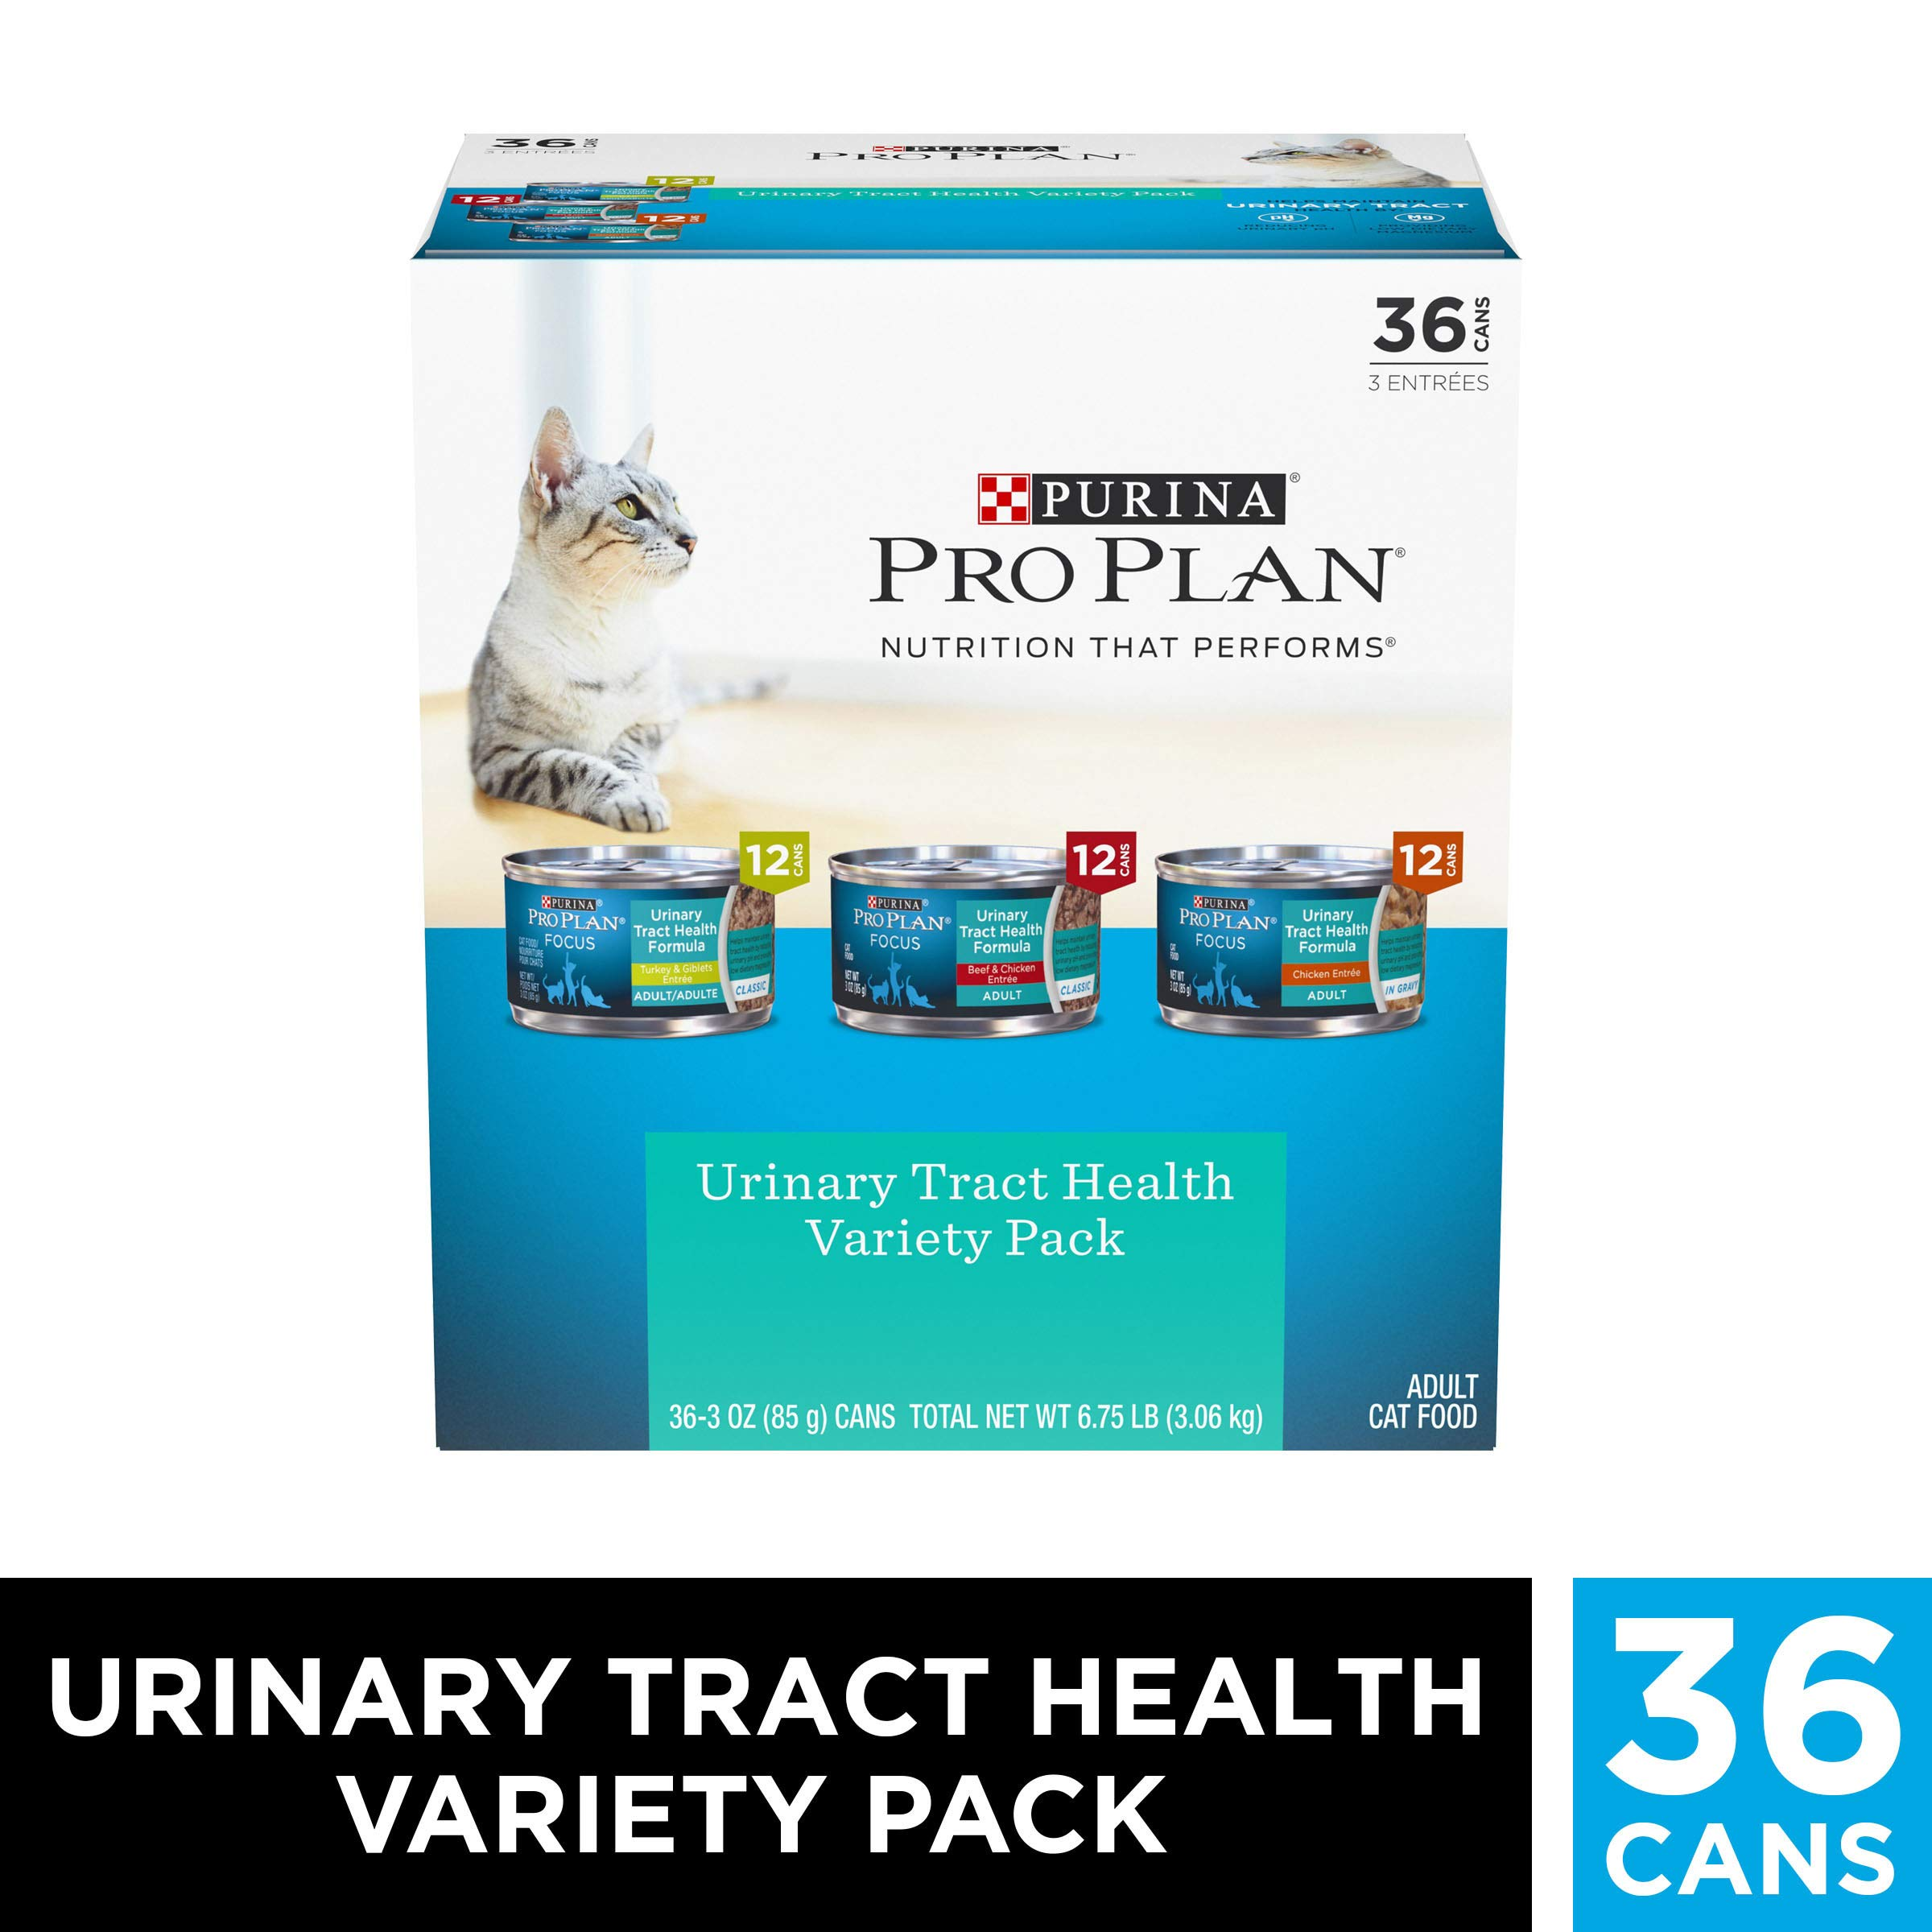 Purina Pro Plan Urinary Tract Health Wet Cat Food Variety Pack, FOCUS Urinary Tract Health Formula - (36) 3 oz. Cans by PURINA Pro Plan